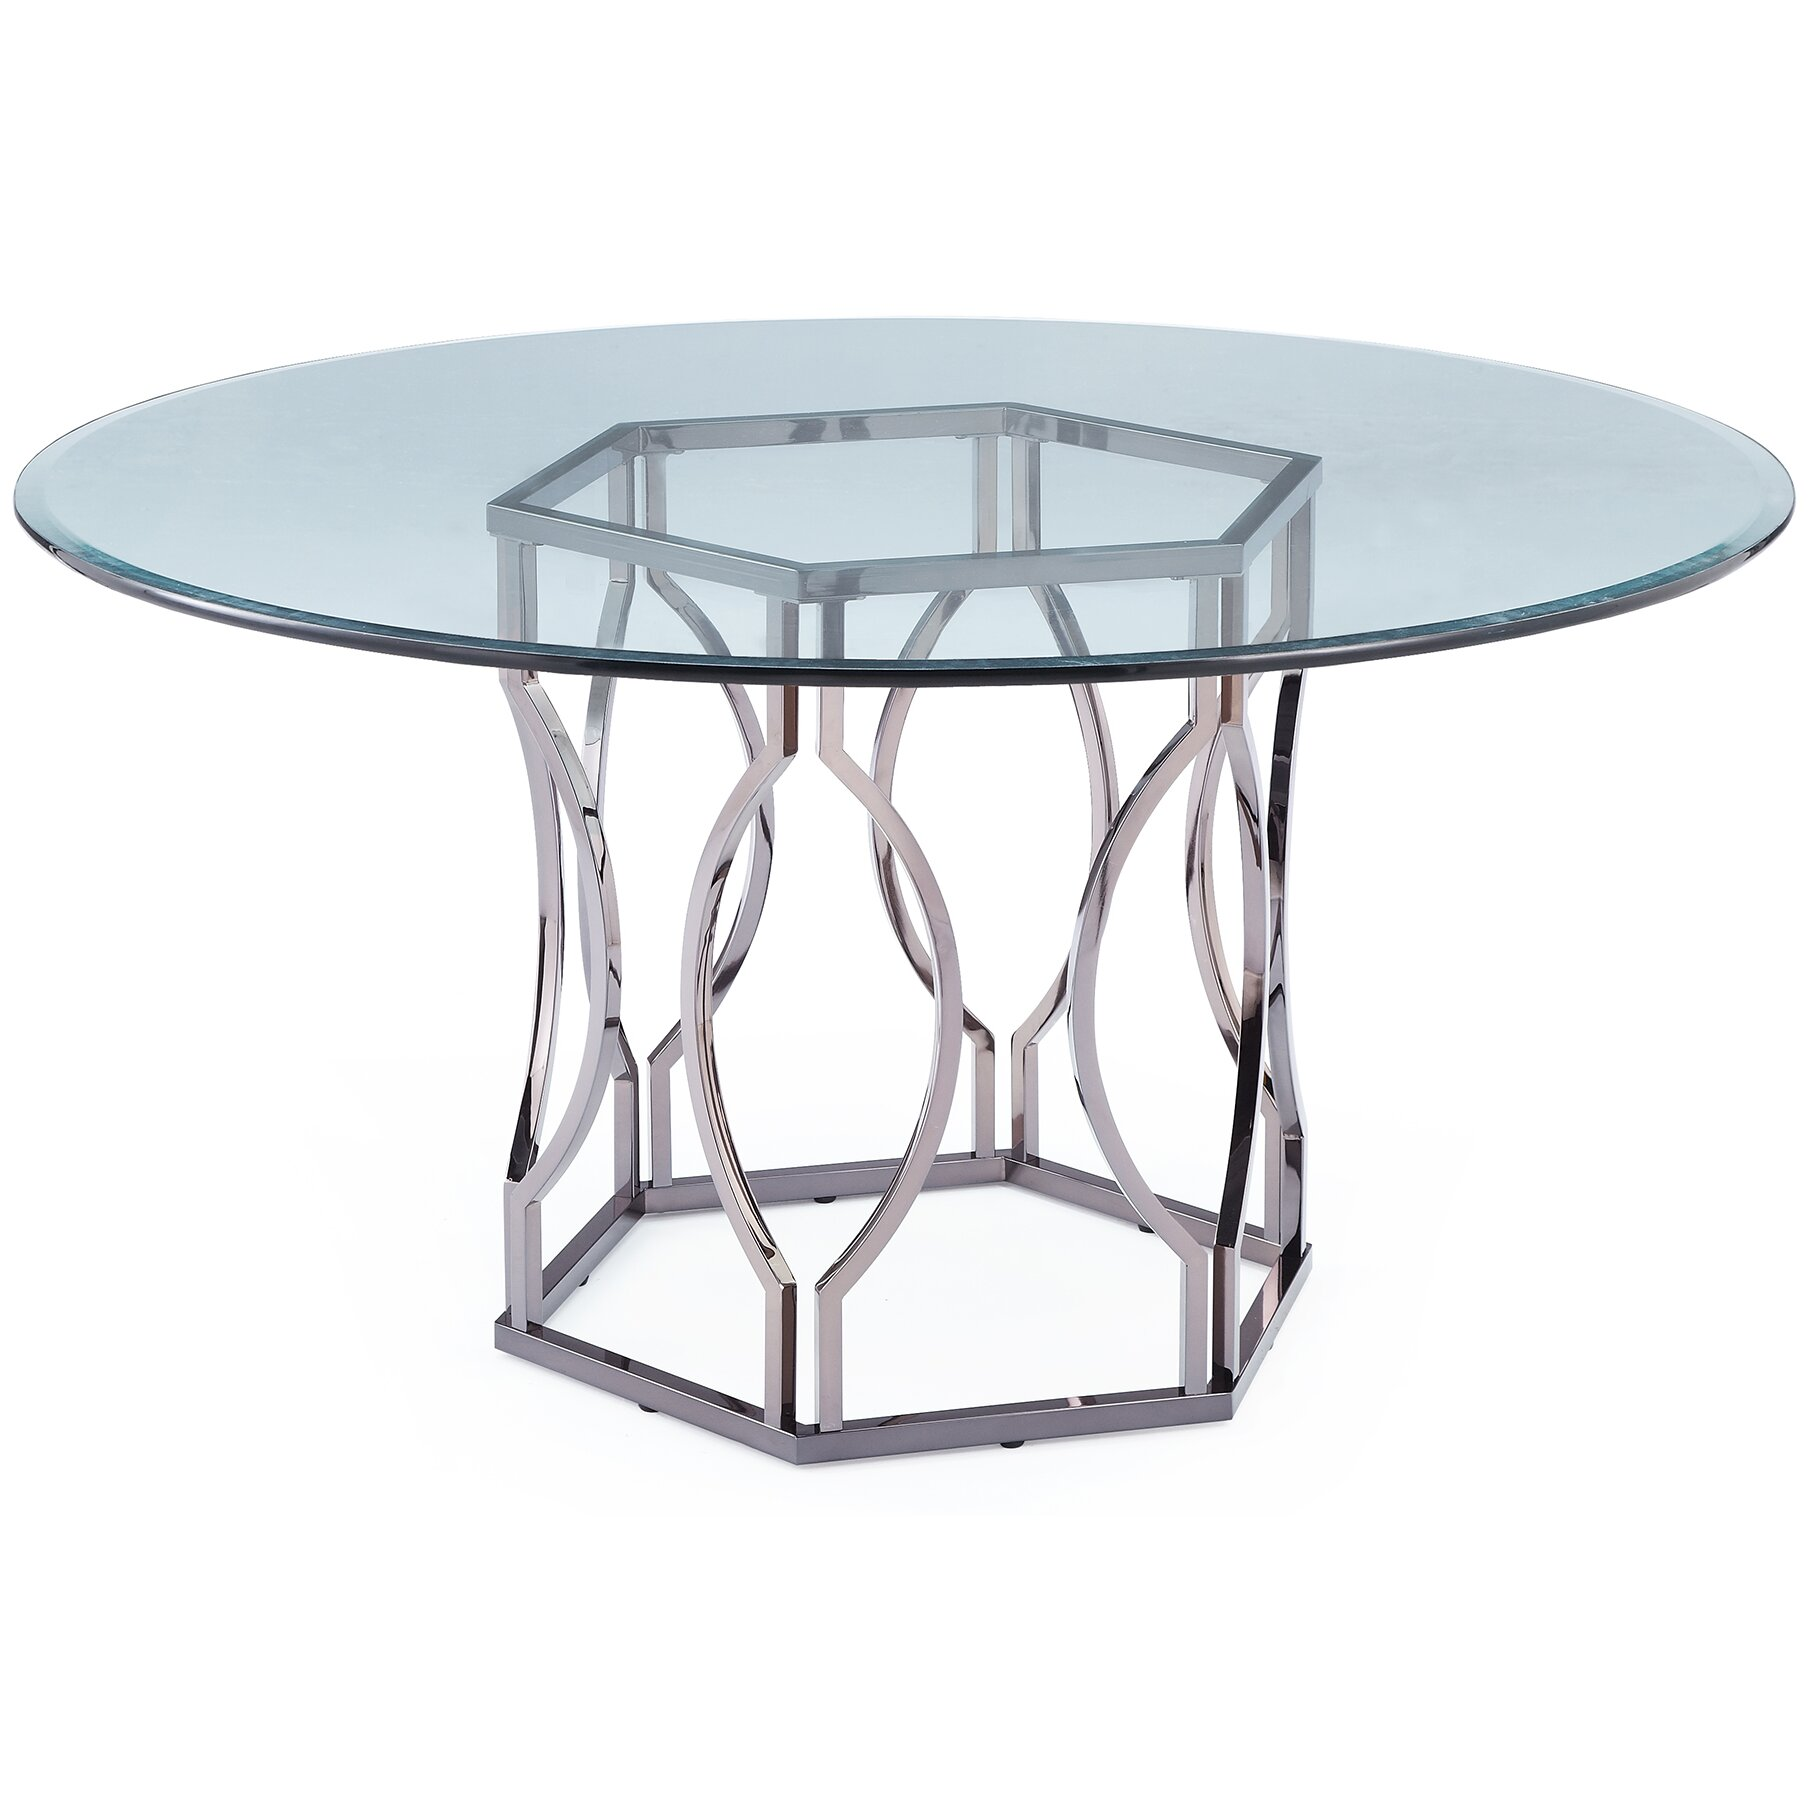 Round Dining Room Table For 8 Mercer41 Viggo Round Glass Dining Table Amp Reviews Wayfair